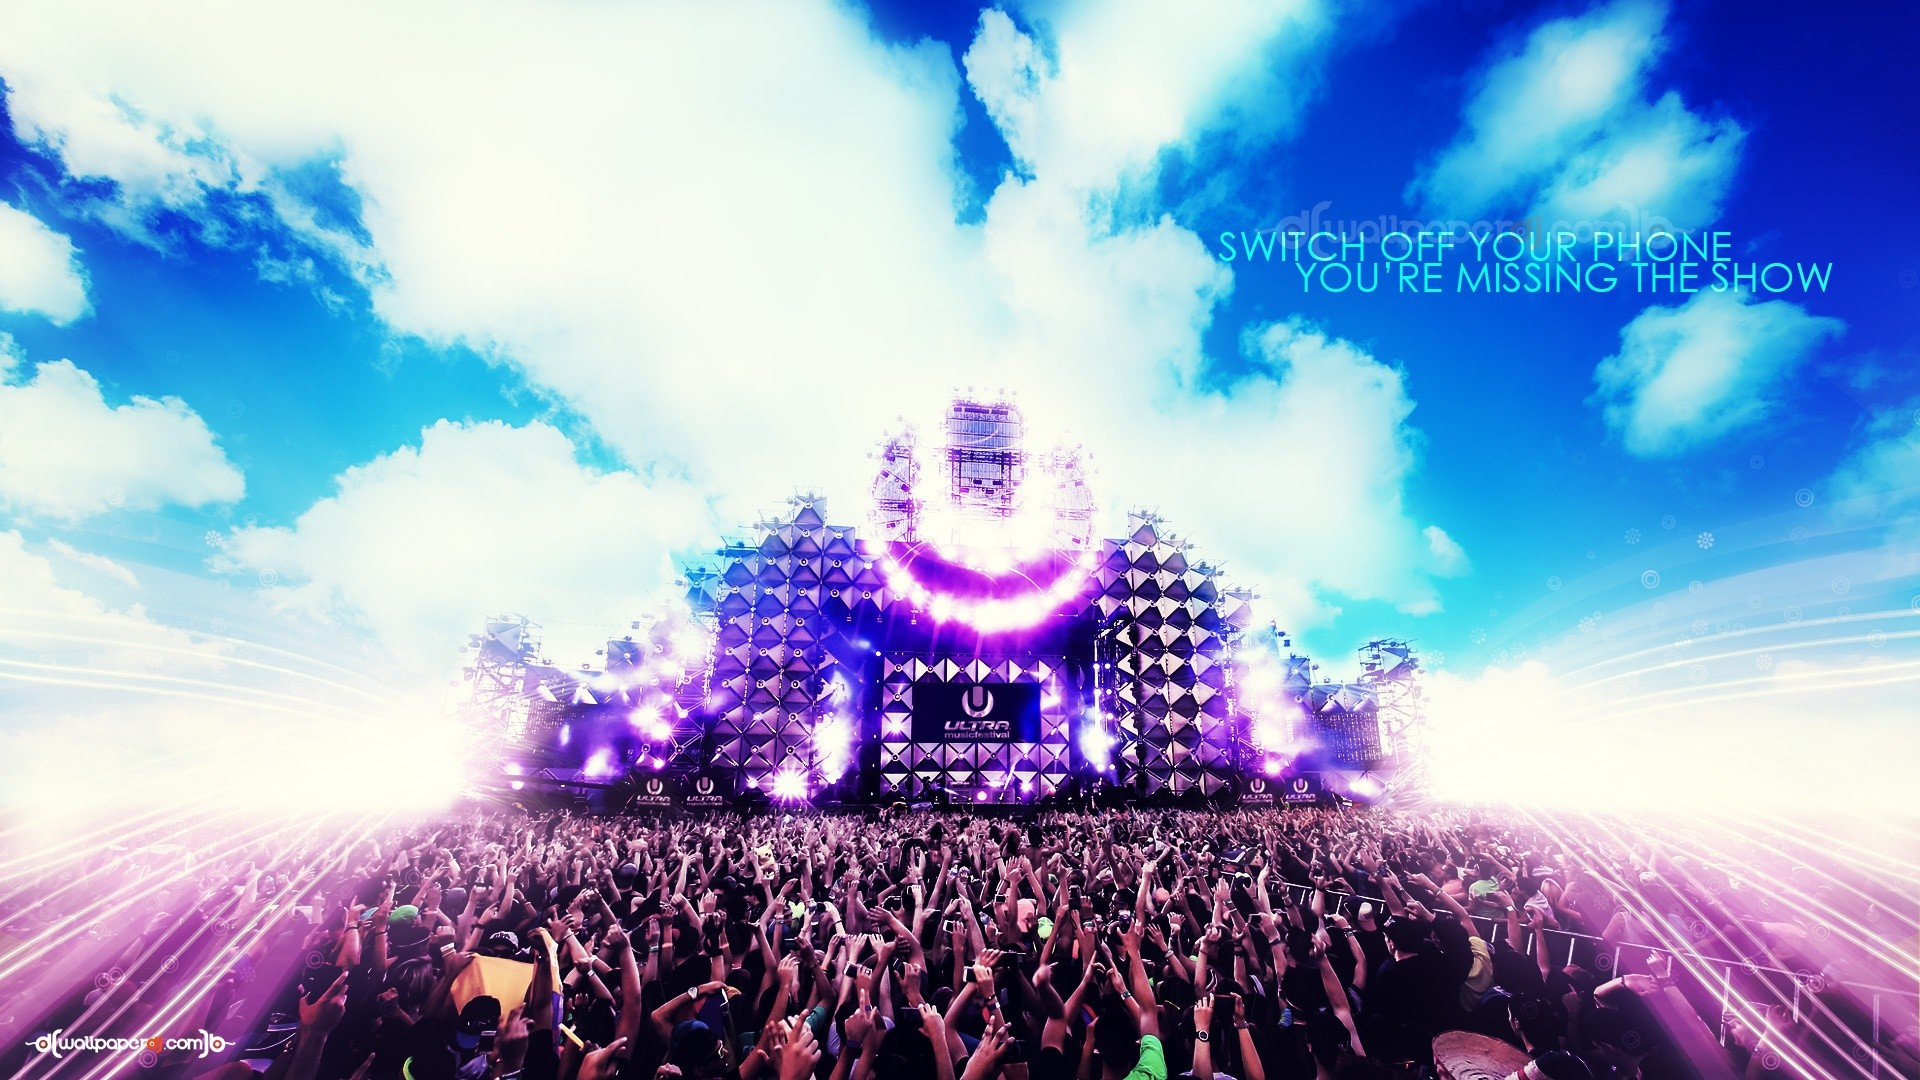 1920x1080 Party Mood ON HD and Wide Wallpapers. Party Mood ON HD Wallpaper, Ultra  Music Festival ...